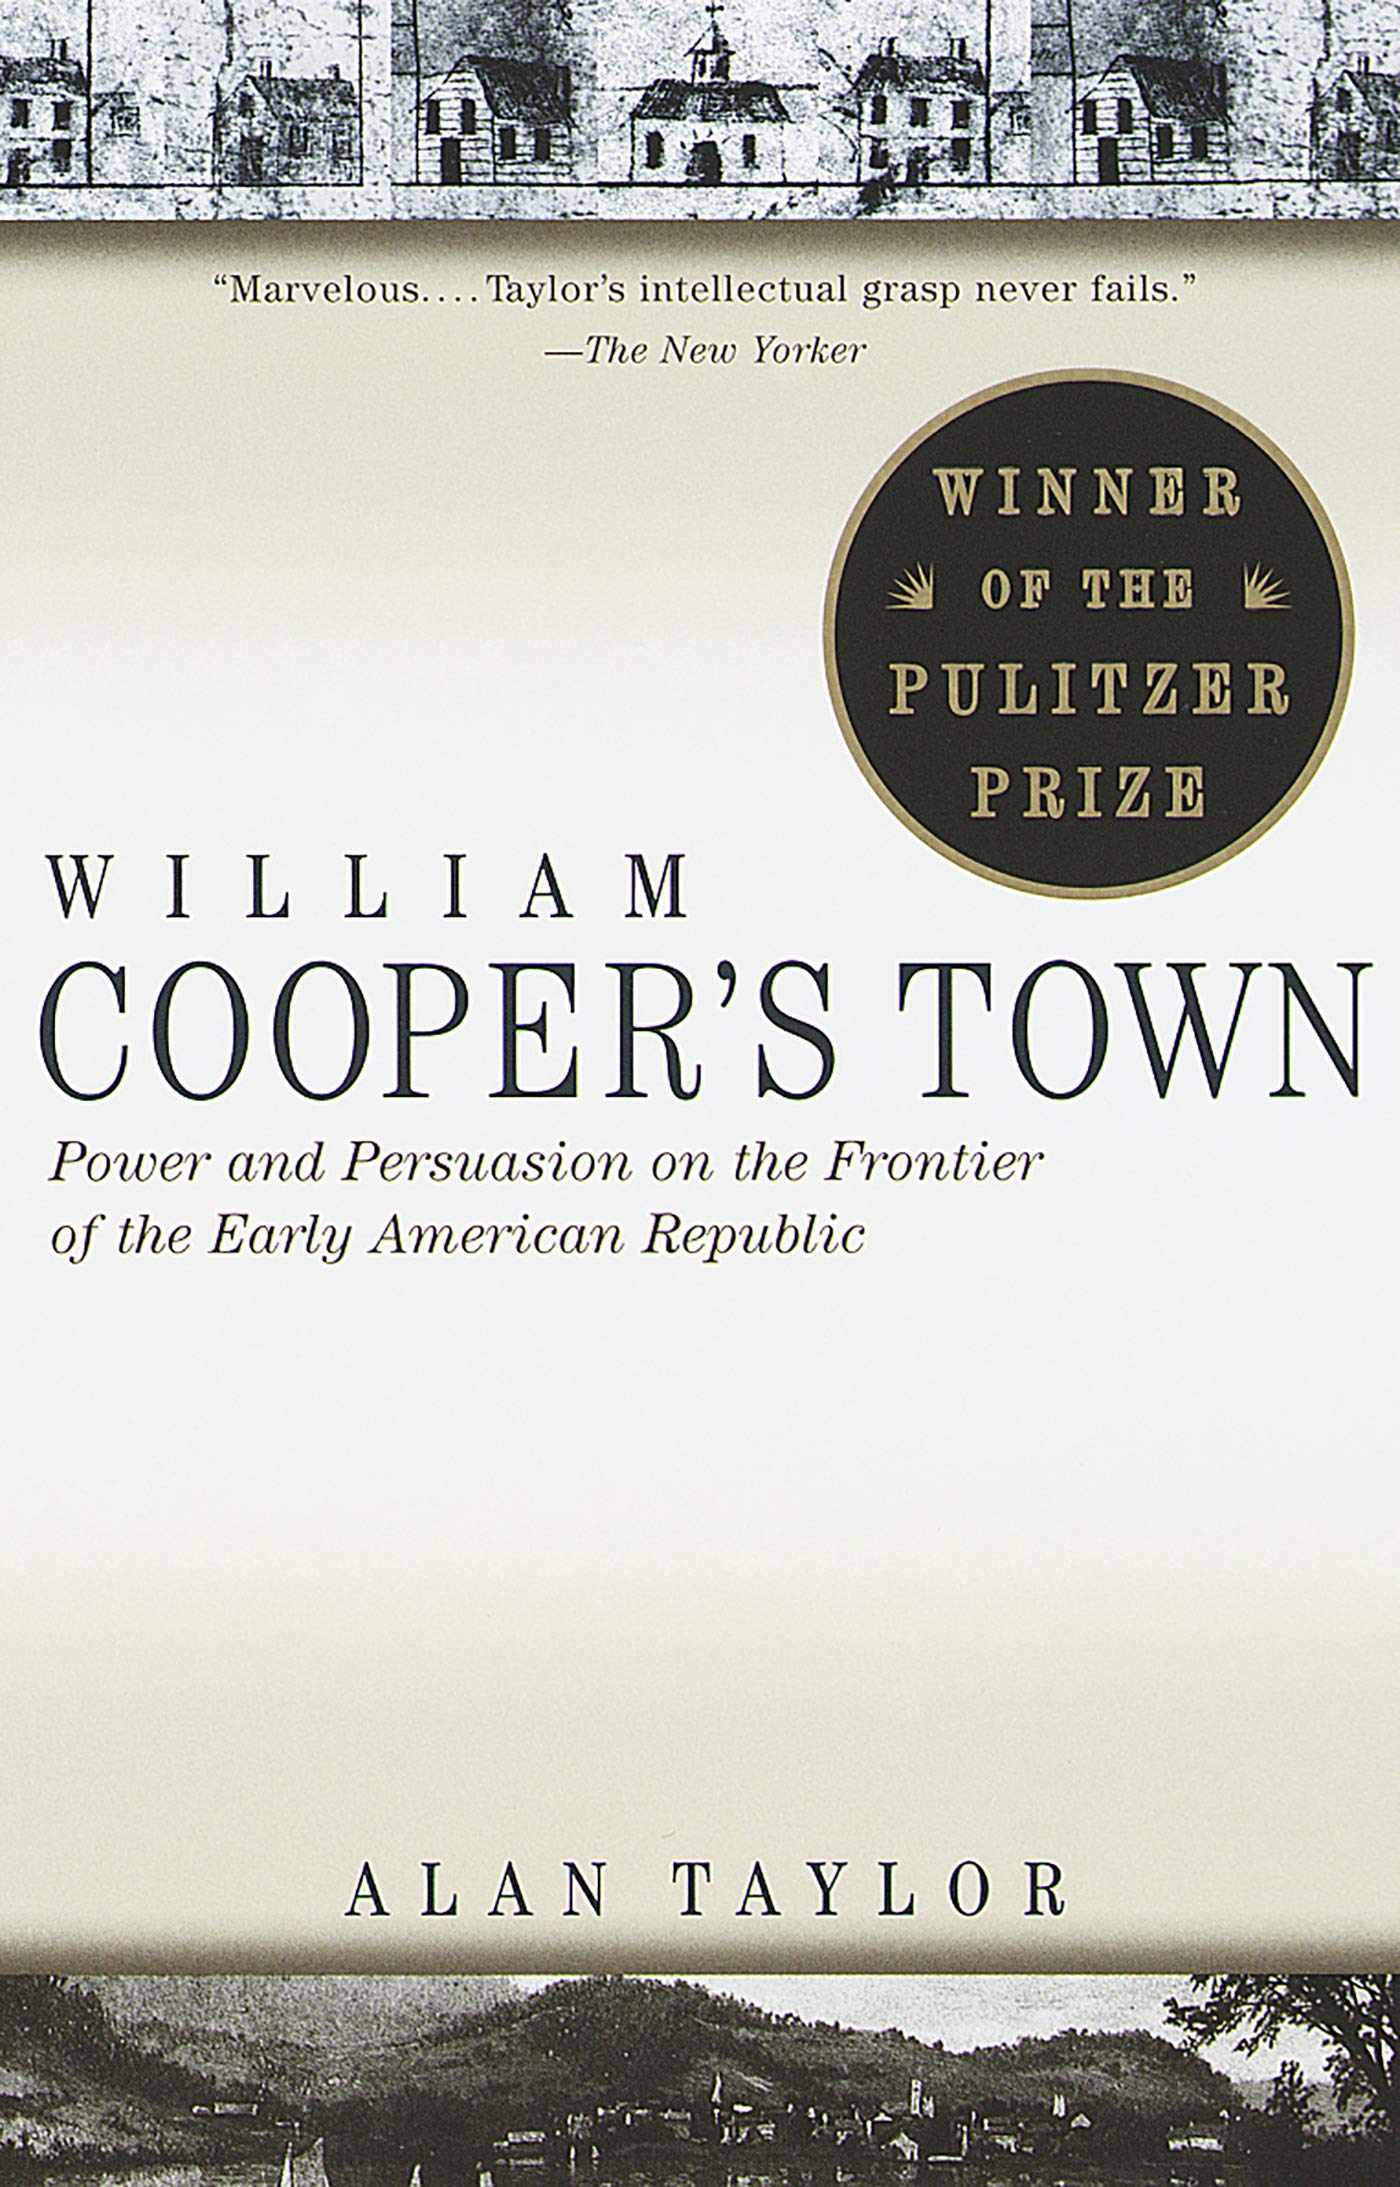 Power and Persuasion on the Frontier of the Early American Republic William Coopers Town